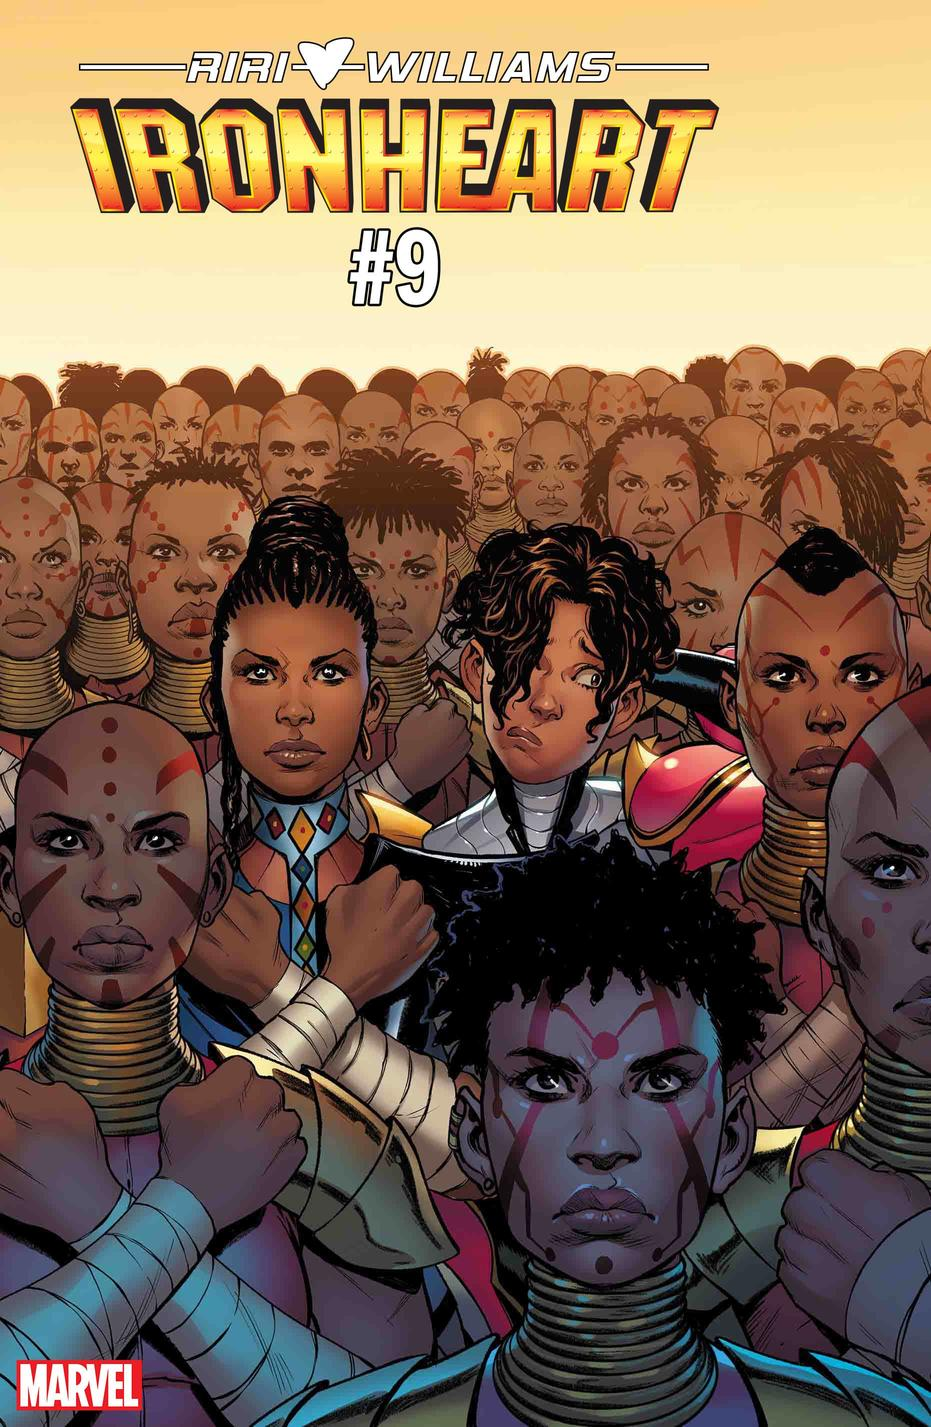 Ironheart #9. Cover by Stefano Caselli.